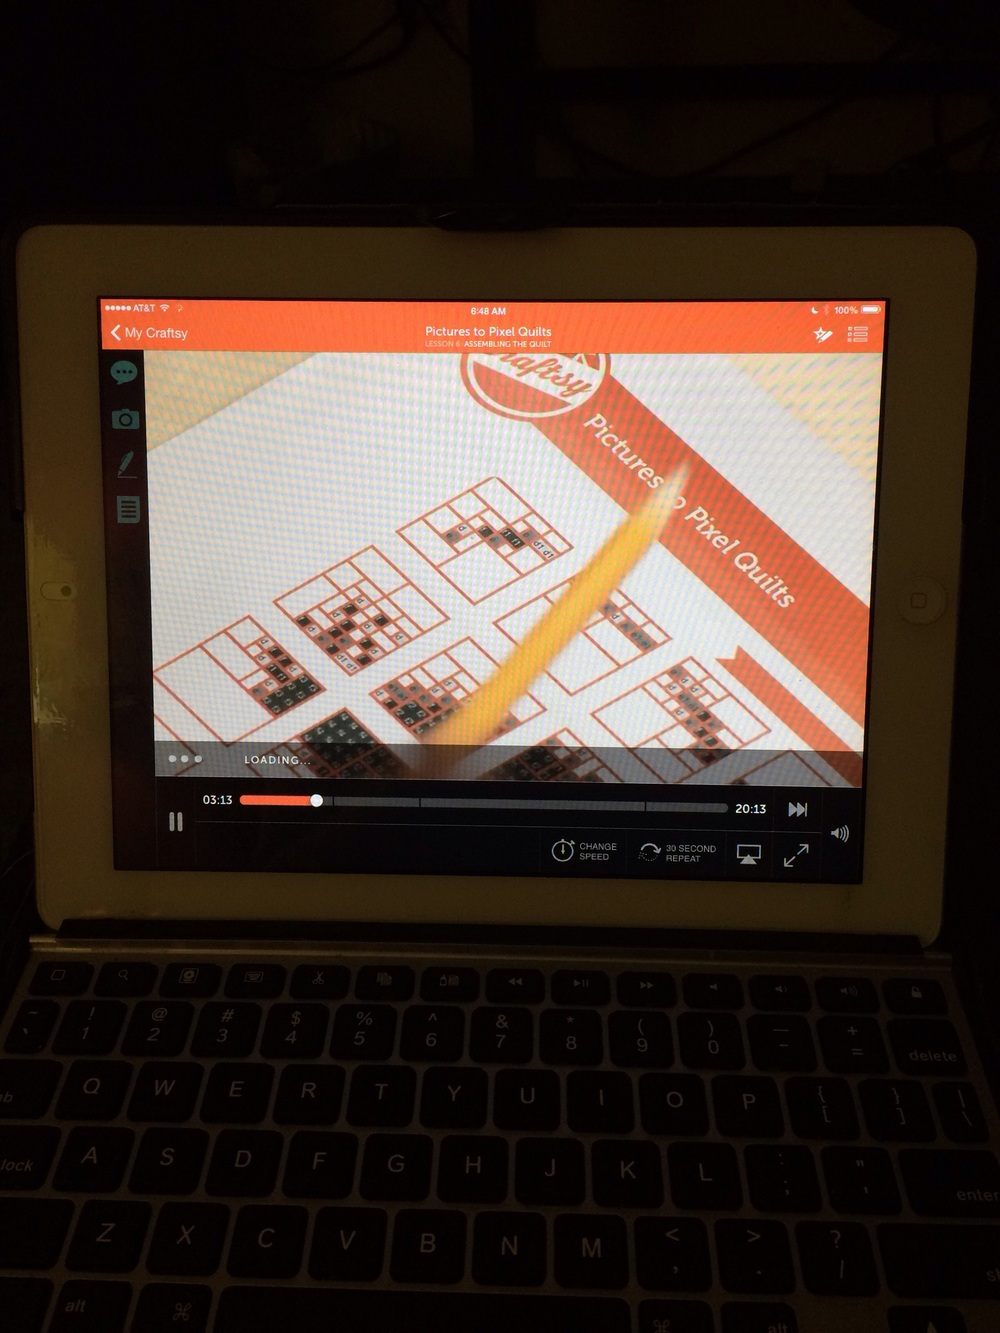 Watching Craftsy on my iPad while out of town